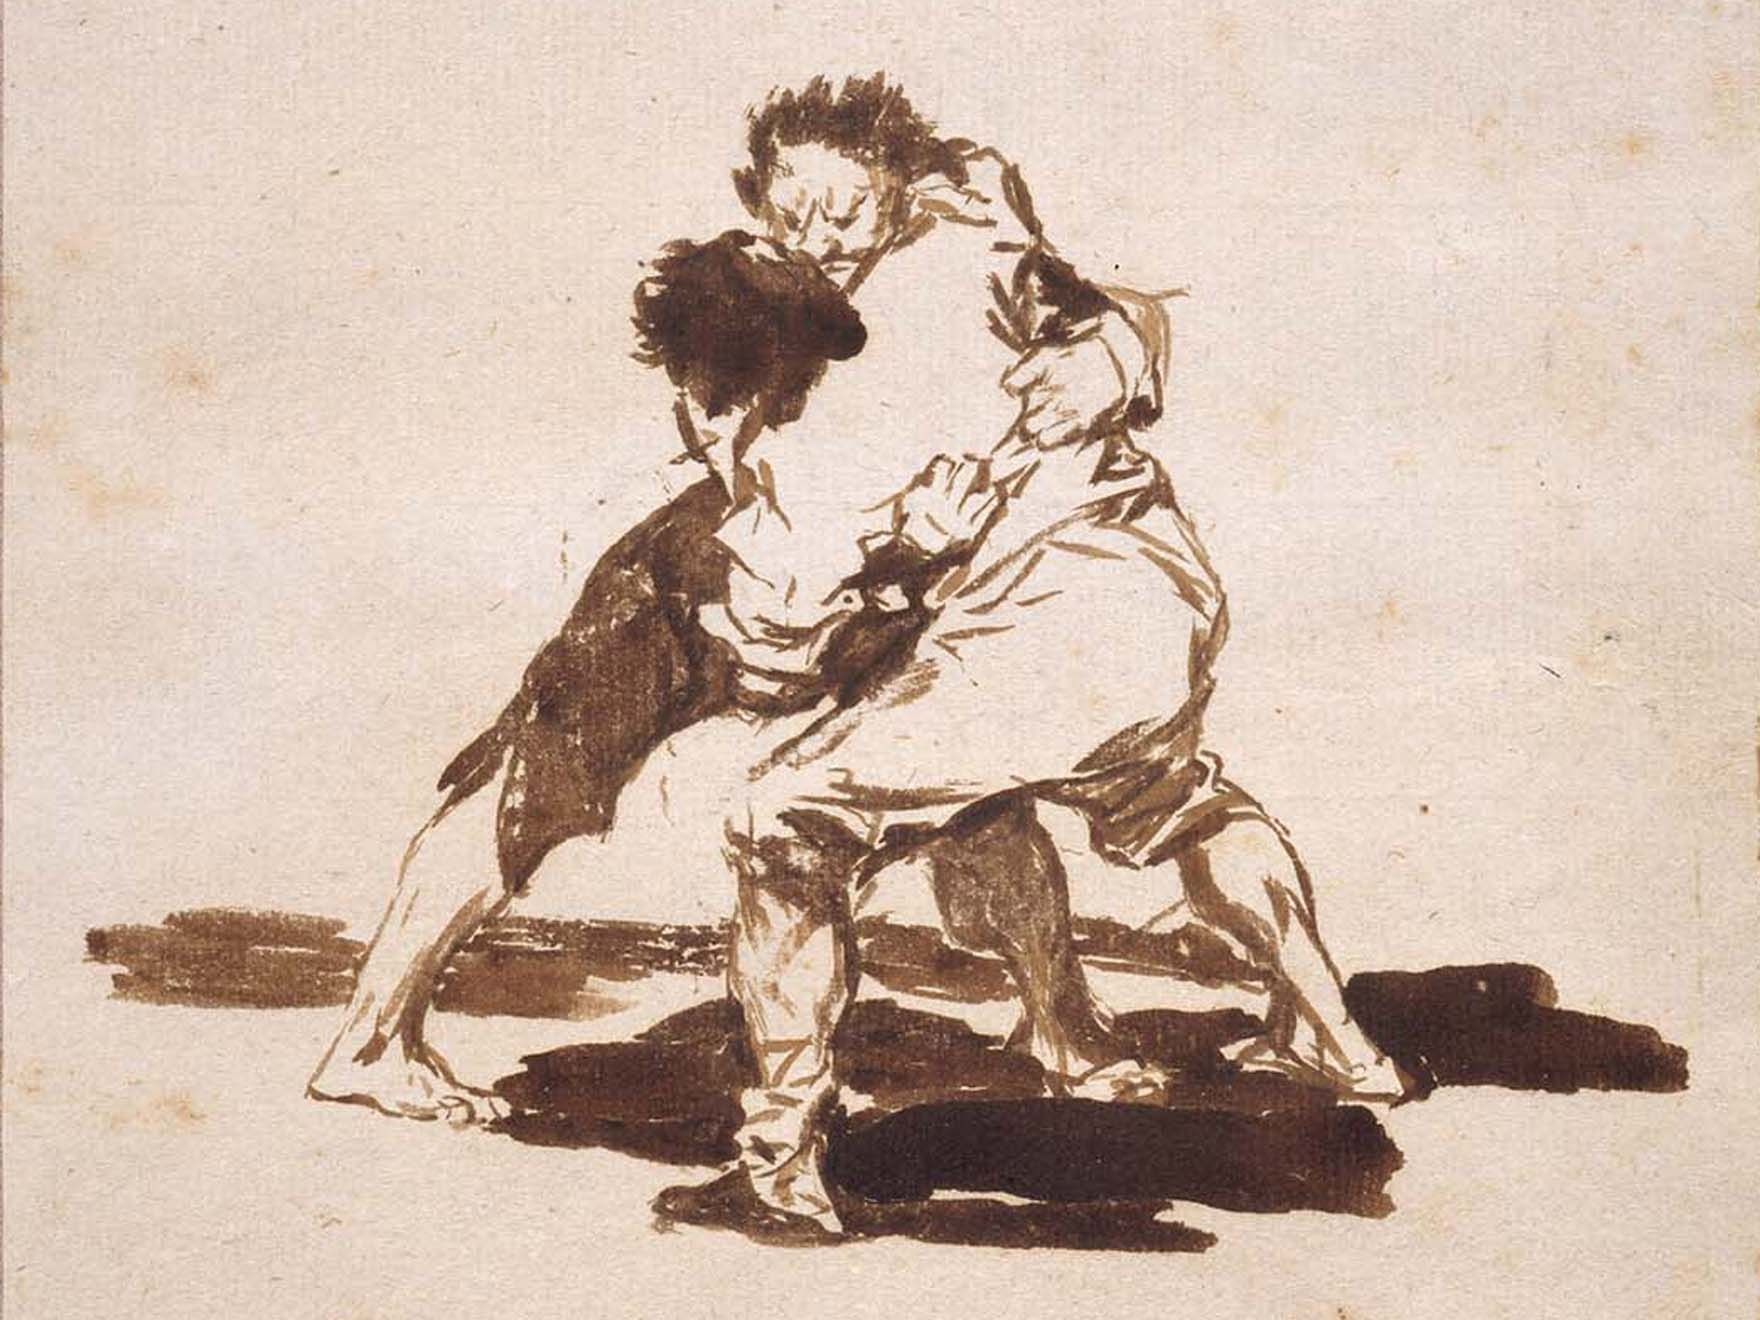 Print of two men fighting. Brush and iron gall ink with scraping on cream laid paper, pink paper mount